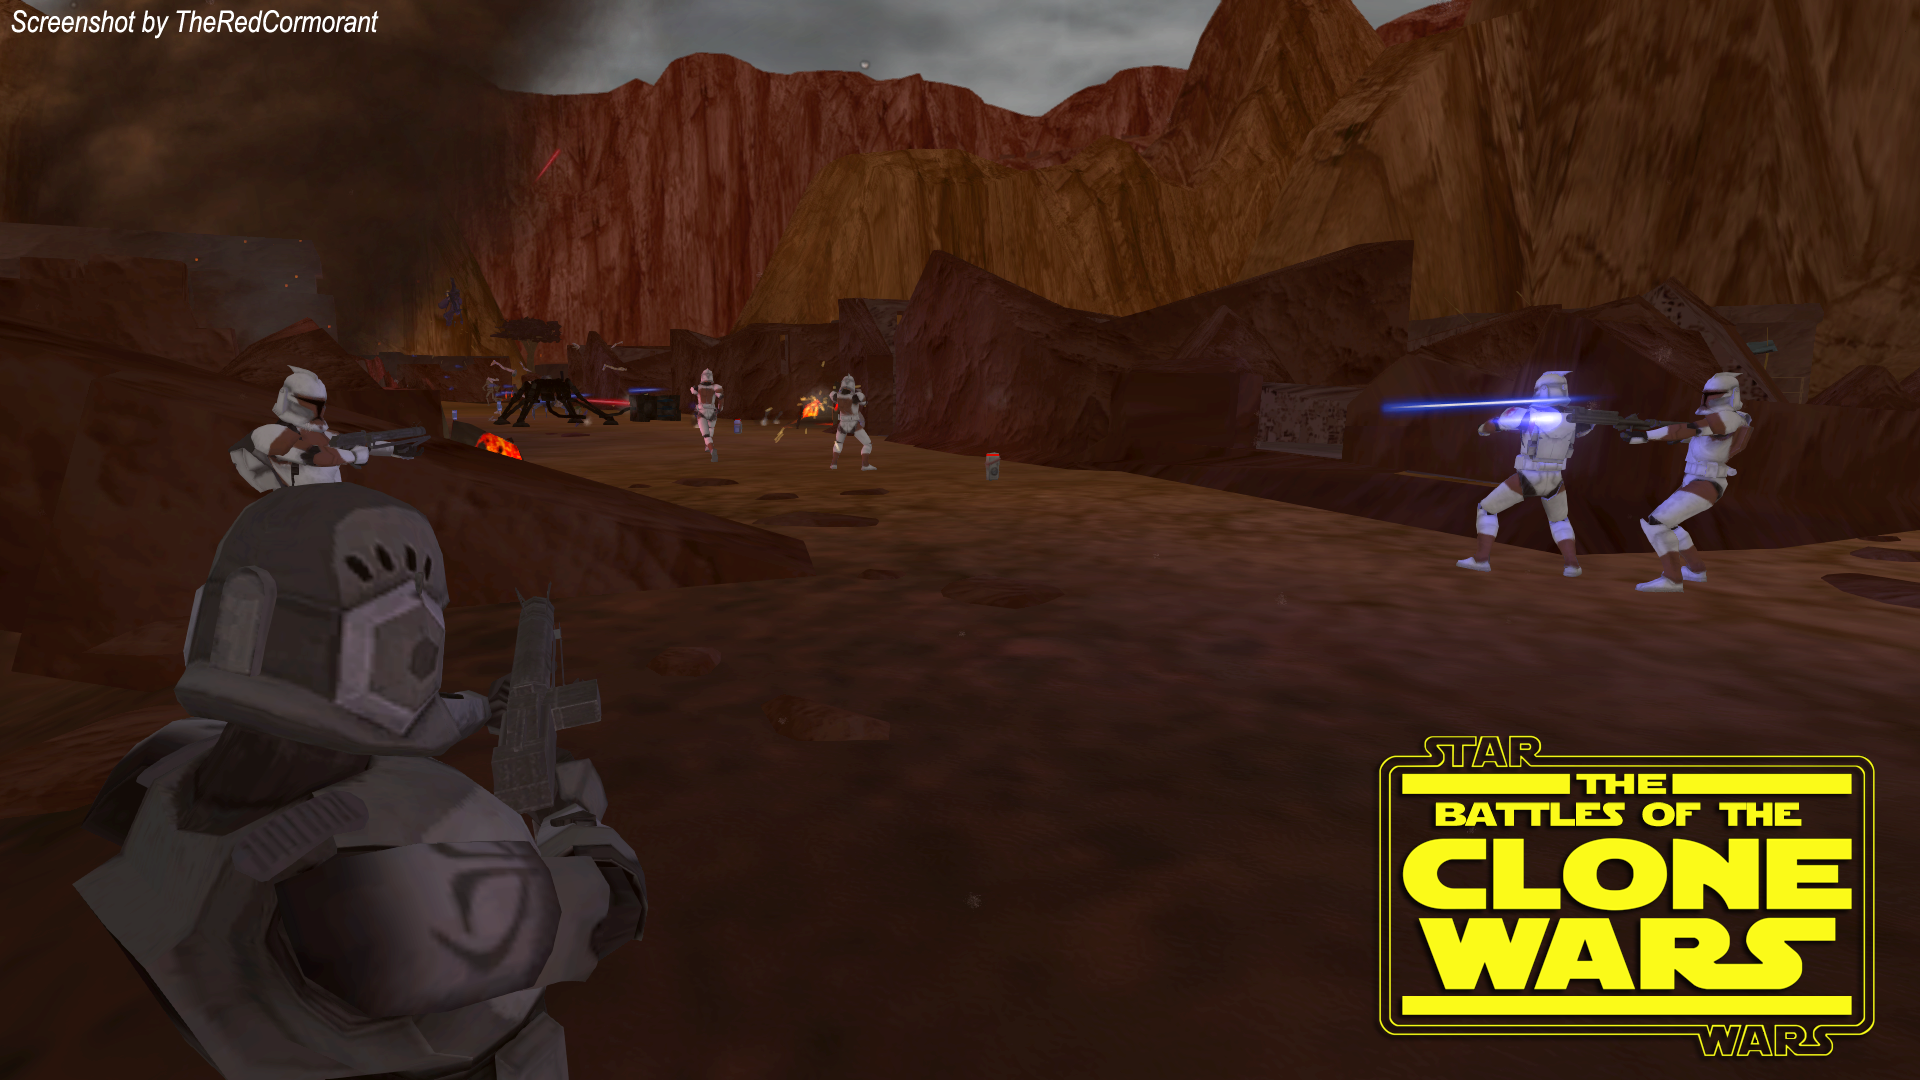 Another Trailer Coming Really Soon Image The Battles Of The Clone Wars Mod For Star Wars Battlefront Ii Mod Db